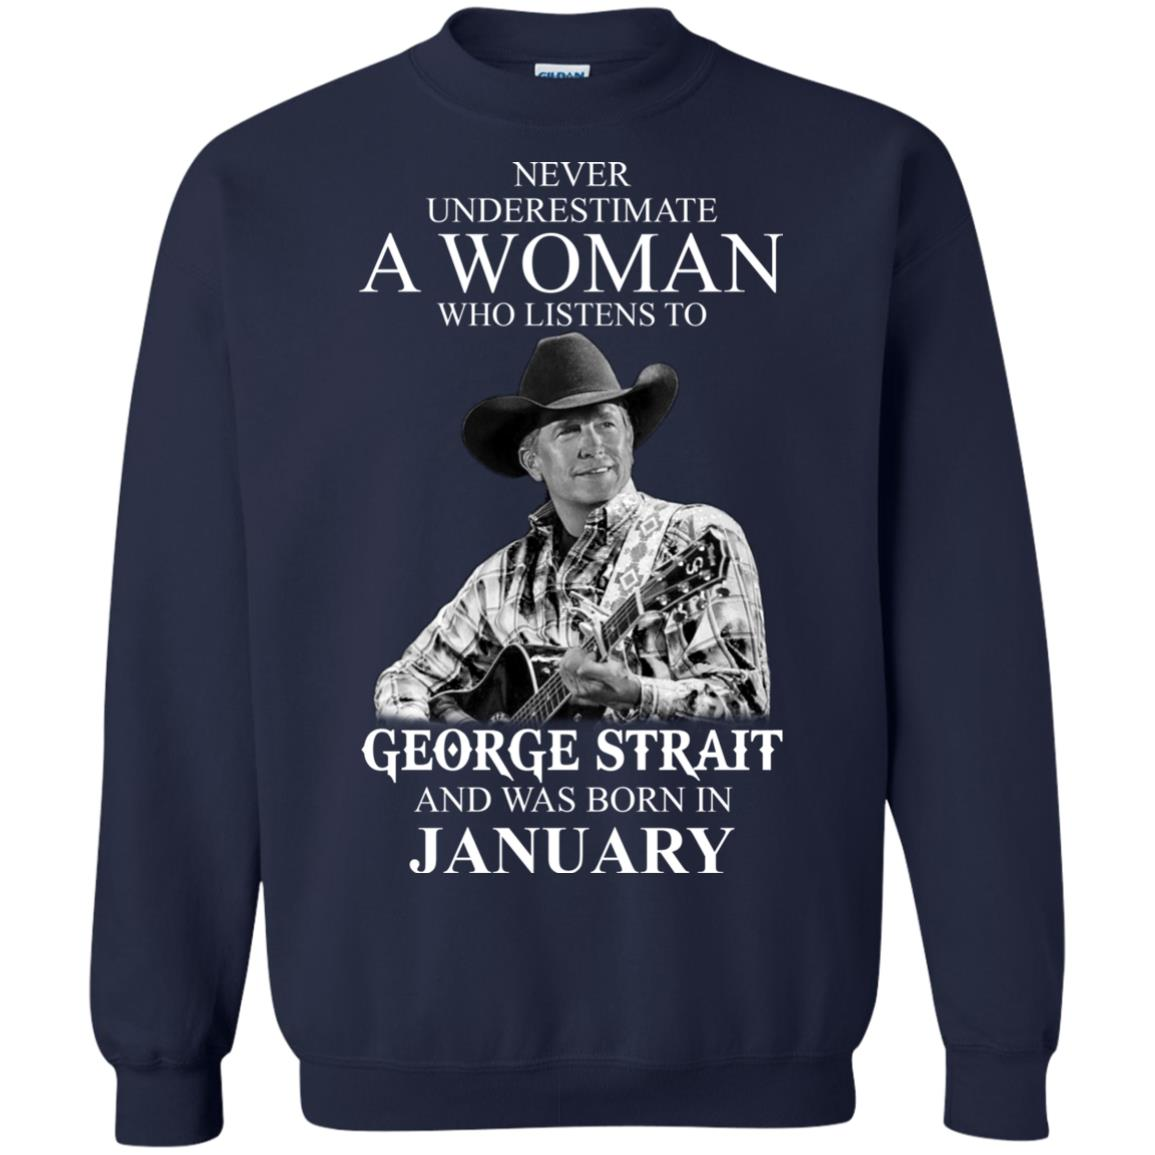 image 465 - Never Underestimate A Woman Who Listens To George Strait And Was Born In January shirt